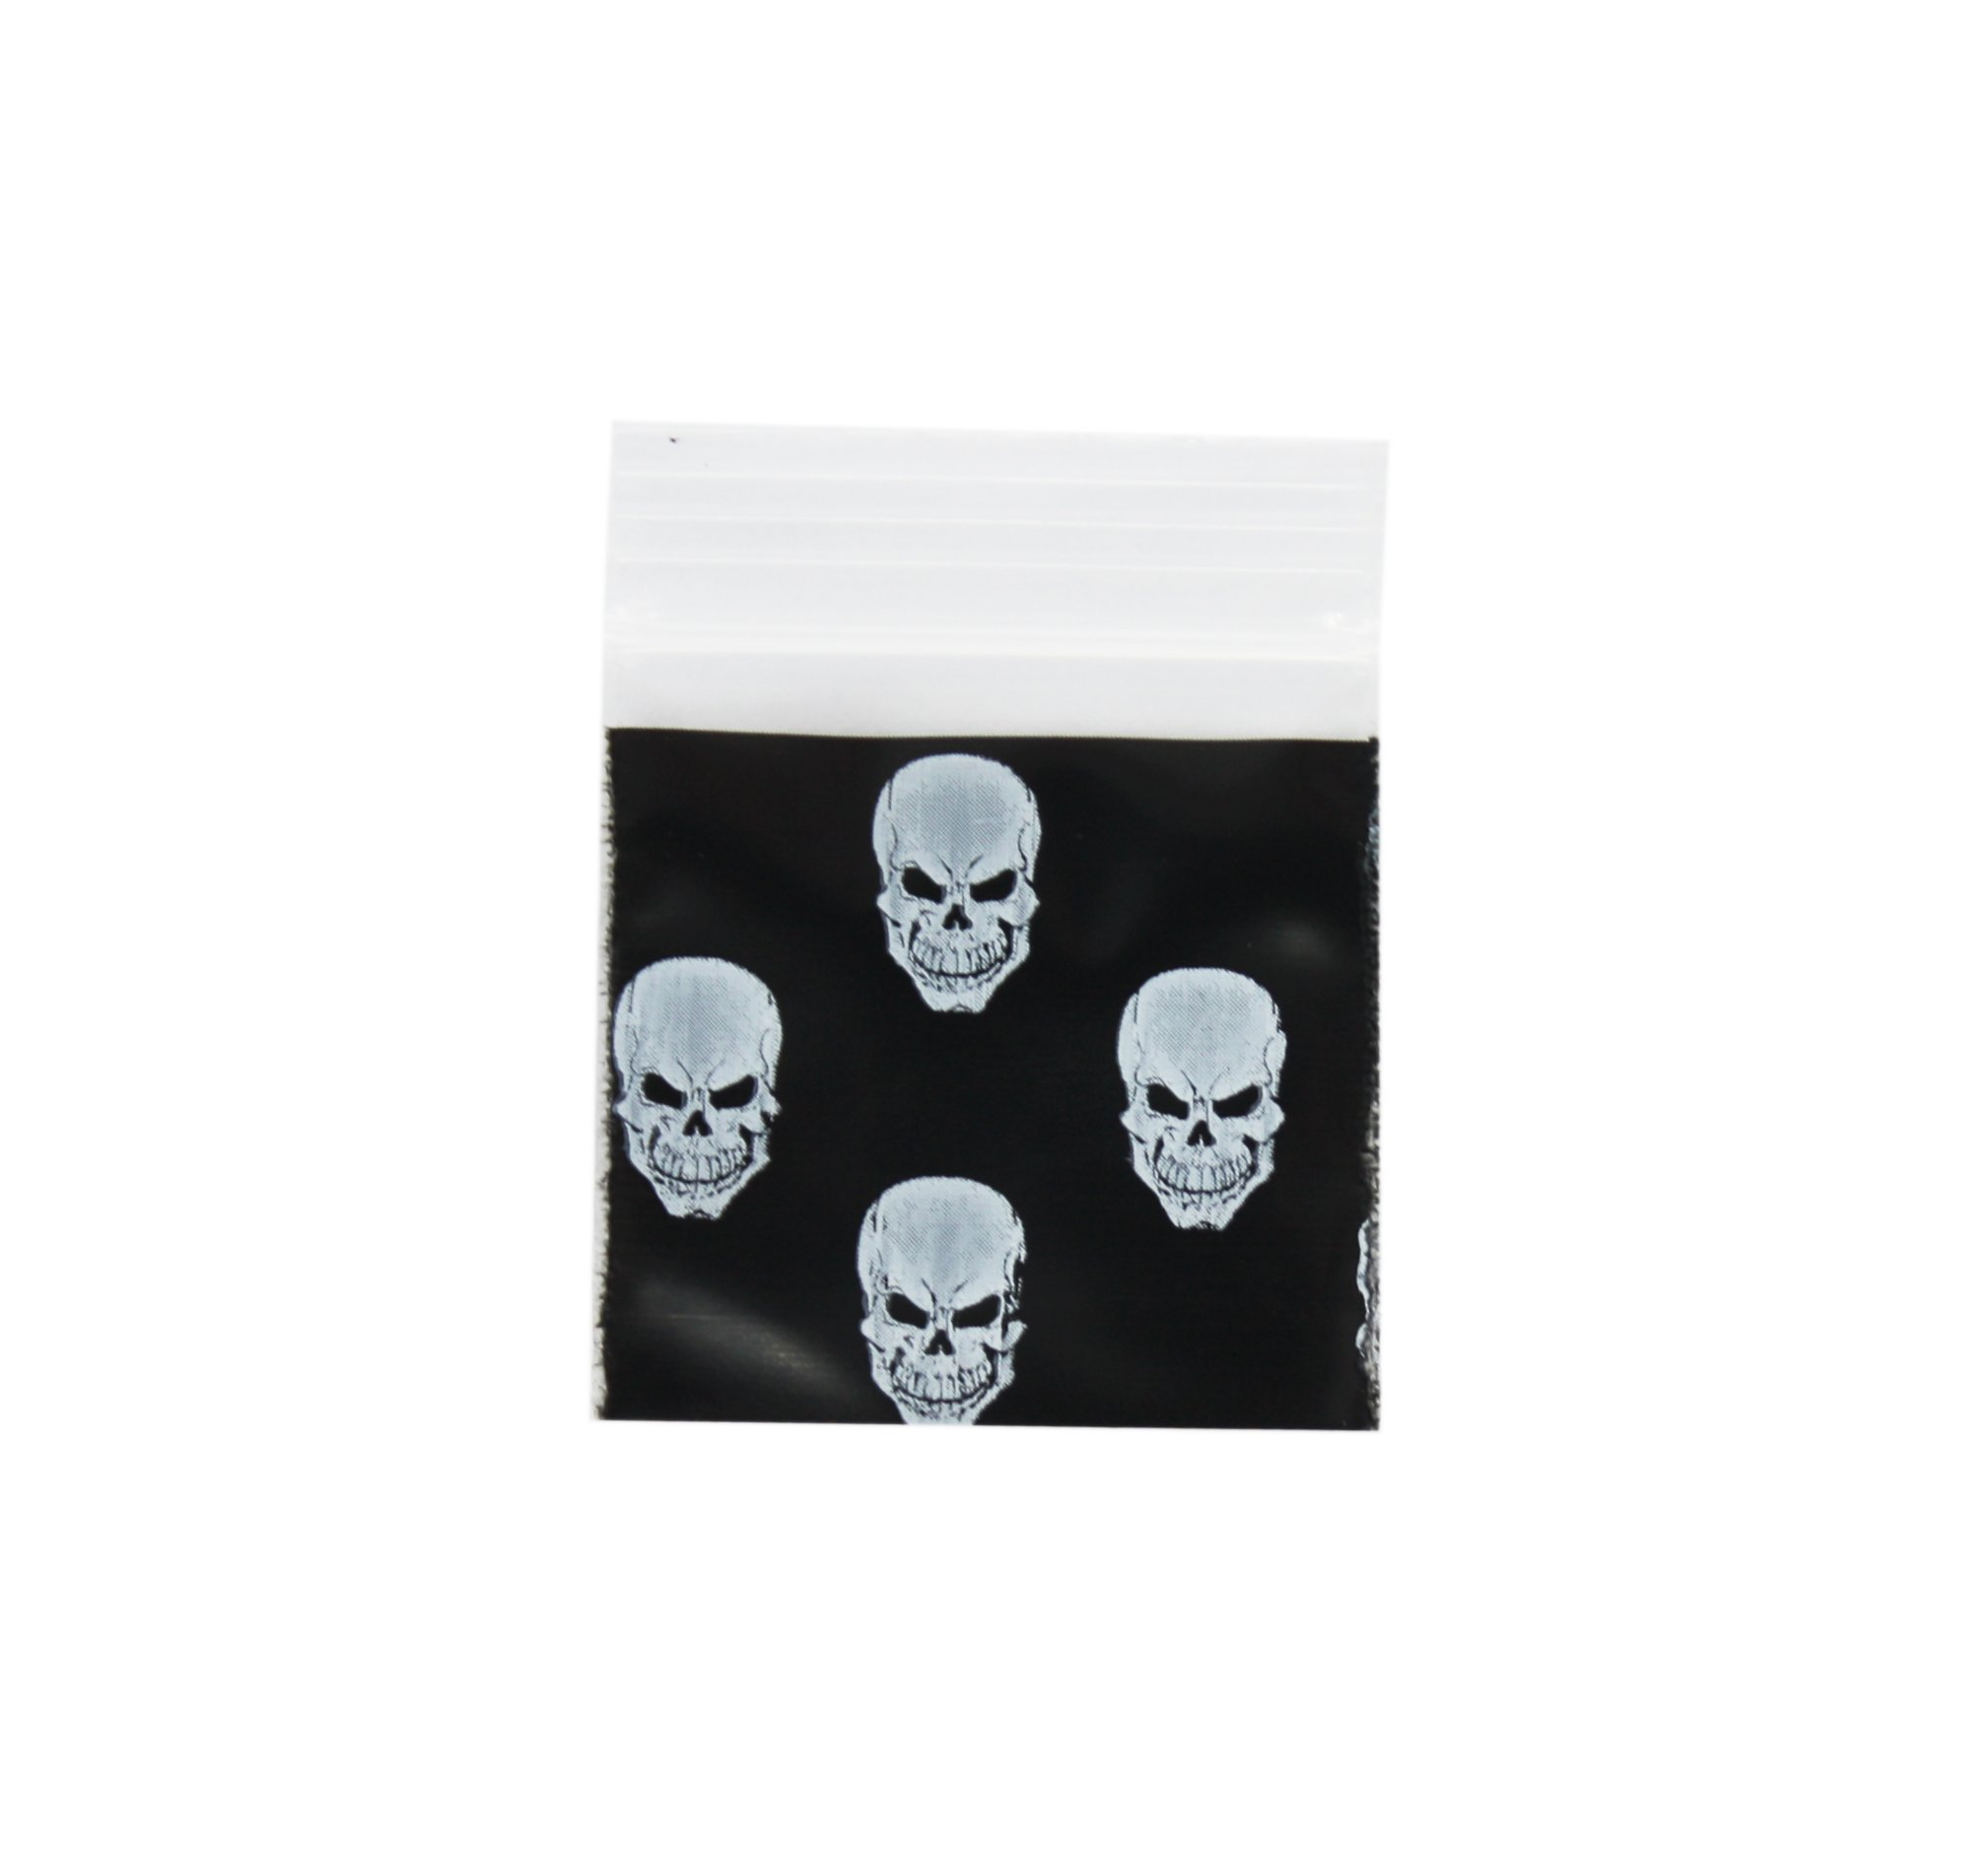 Black Skull Bag 32mm x 32mm